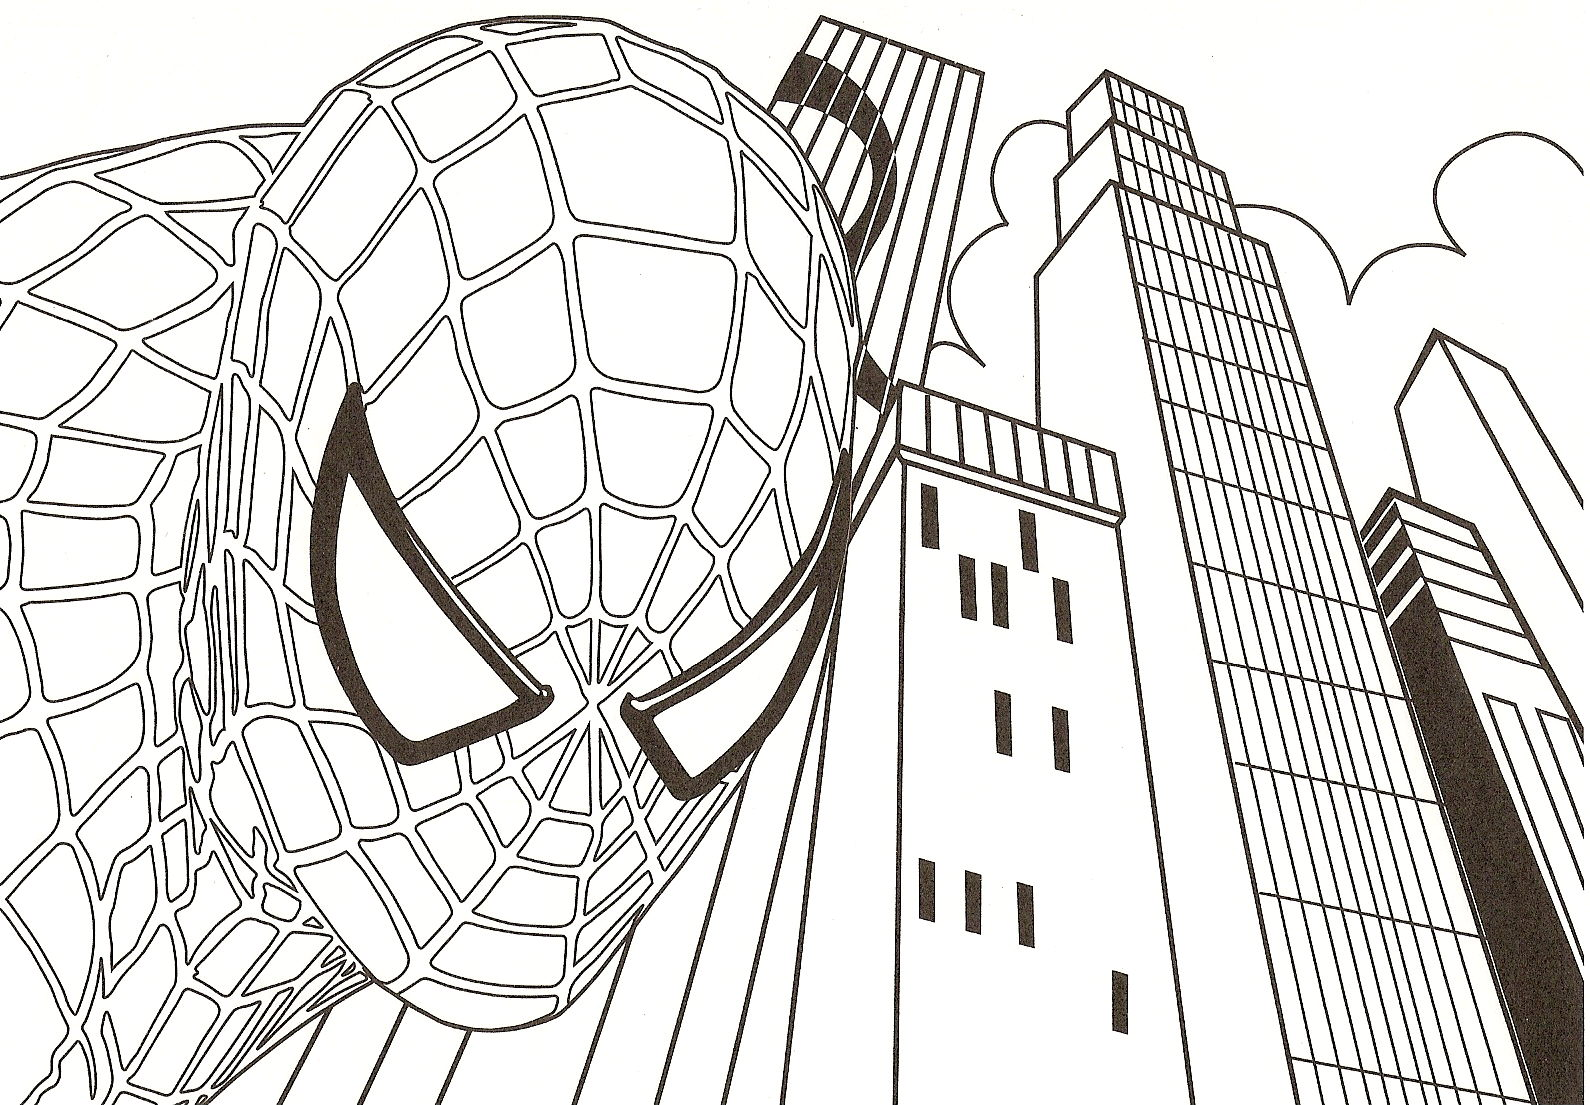 Spiderman coloriage facile - Dessin spiderman facile ...